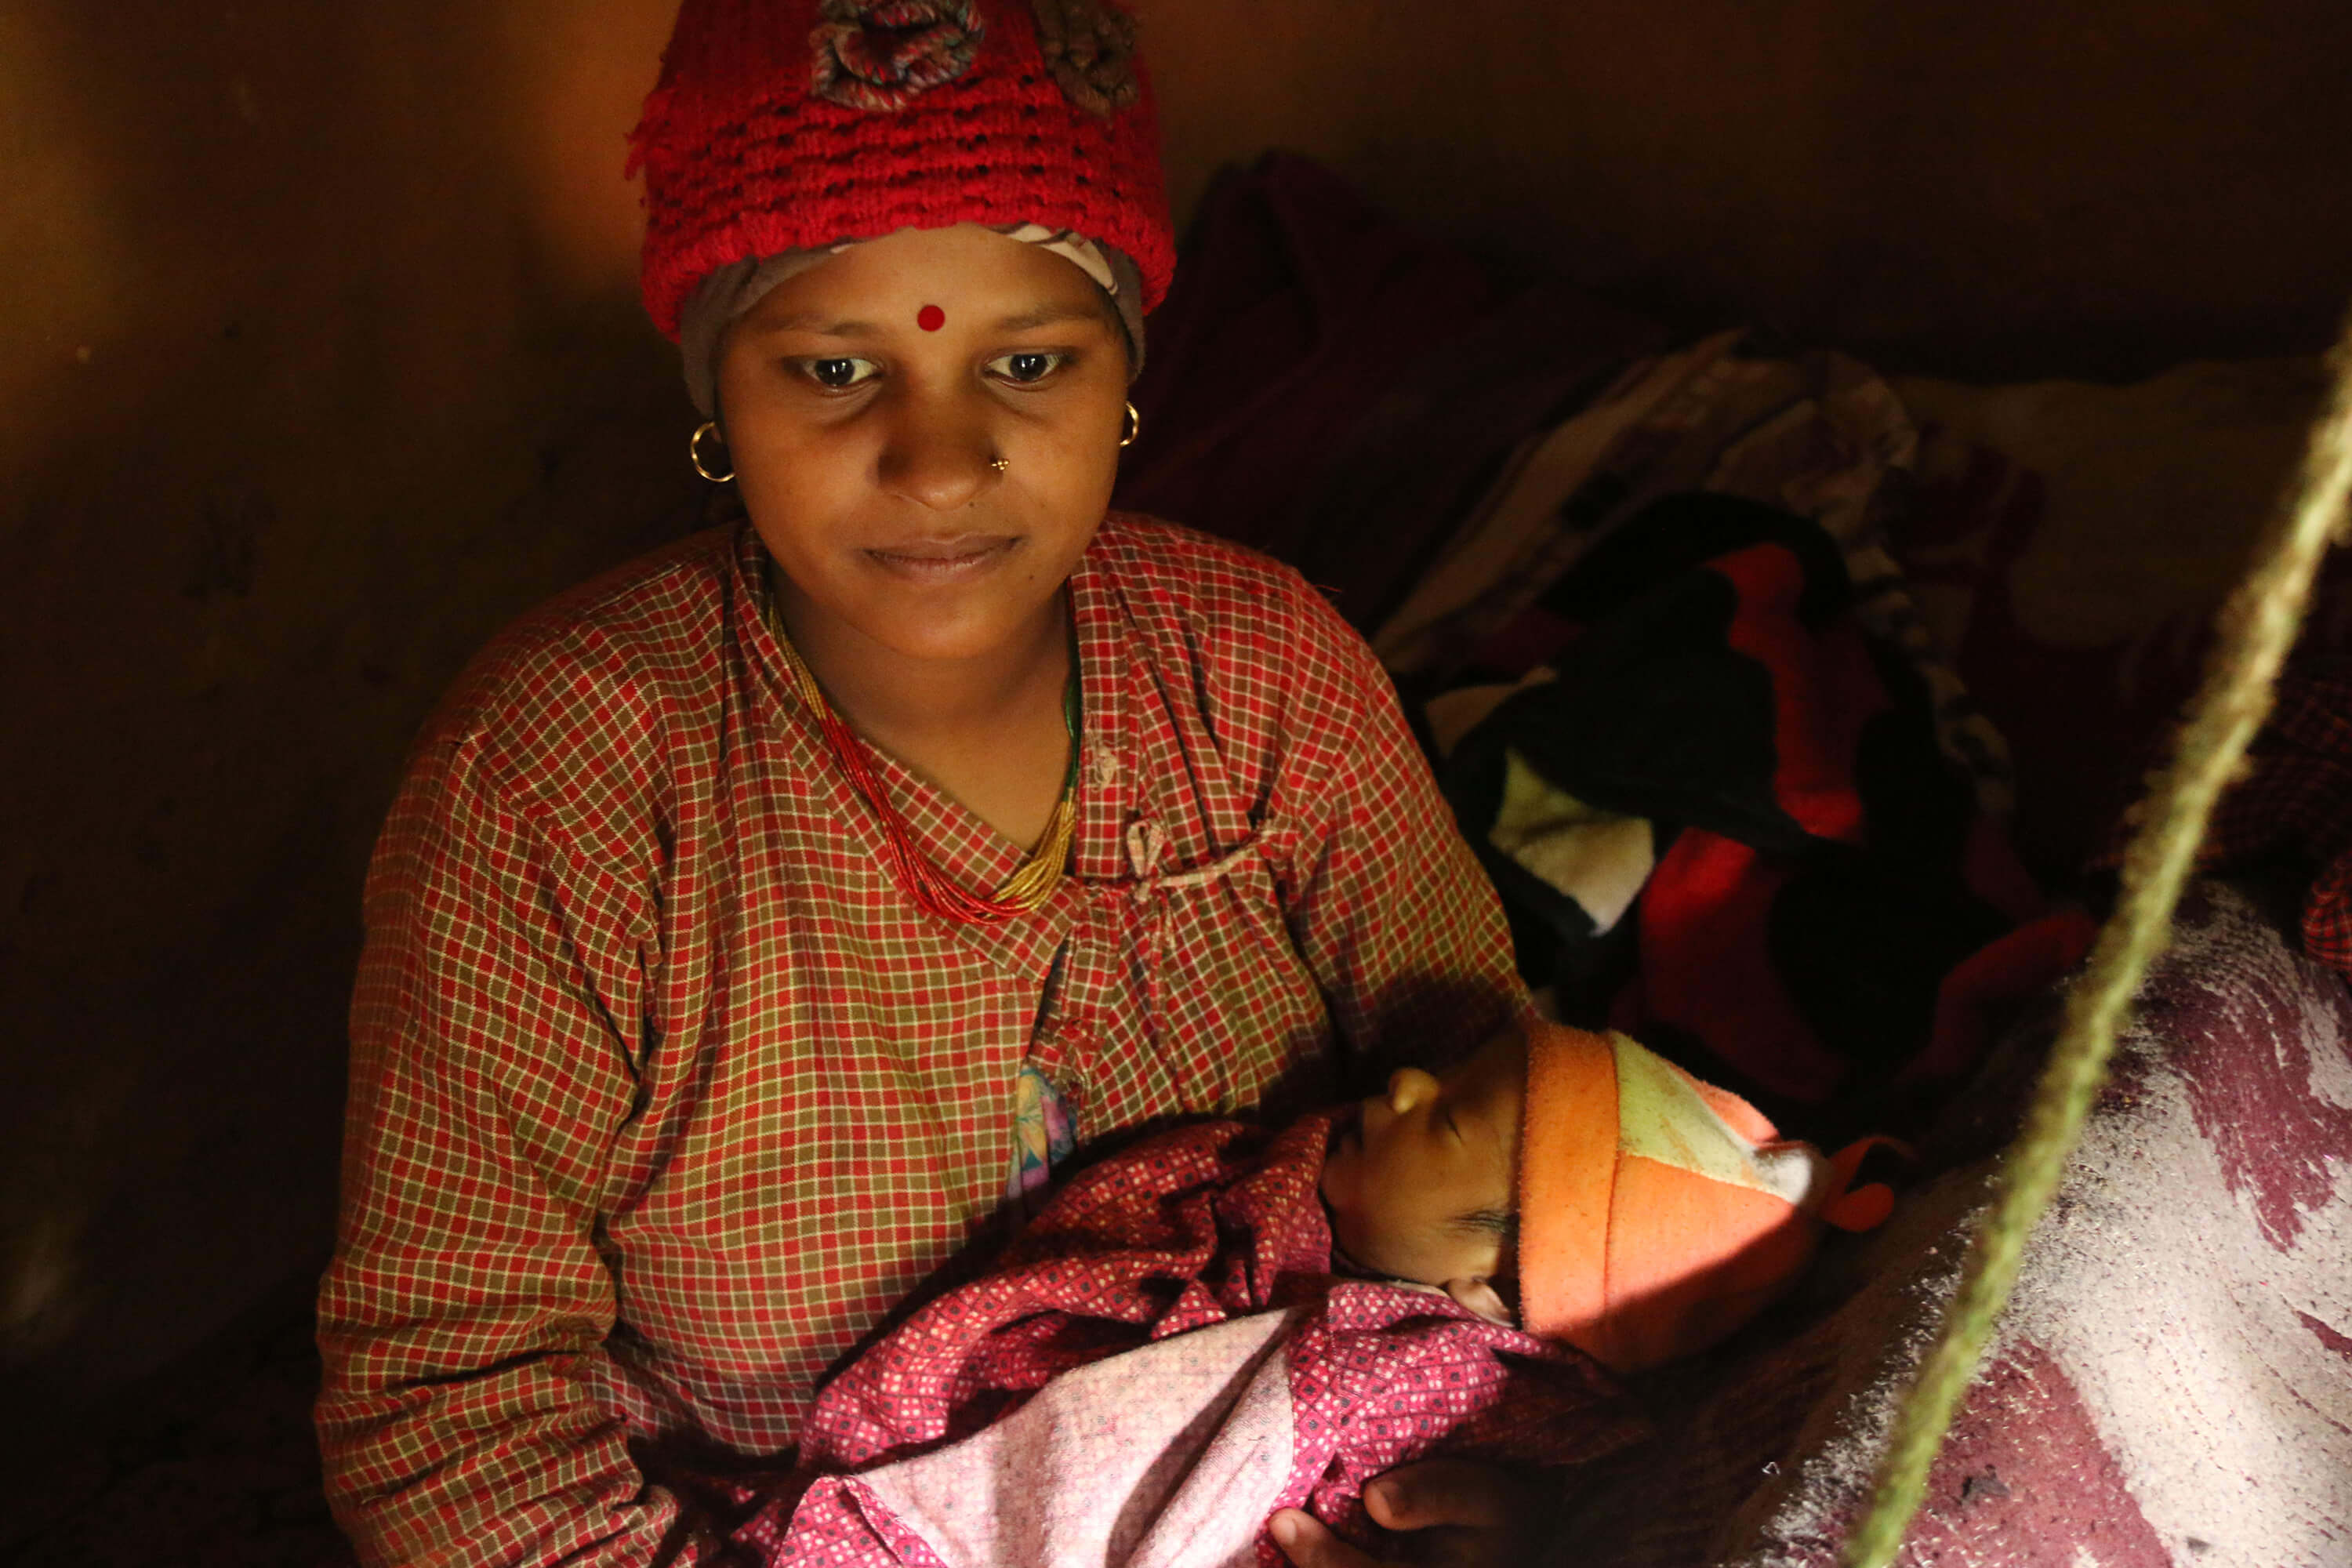 Child marriage in Nepal: eloped at 13, mother by 17